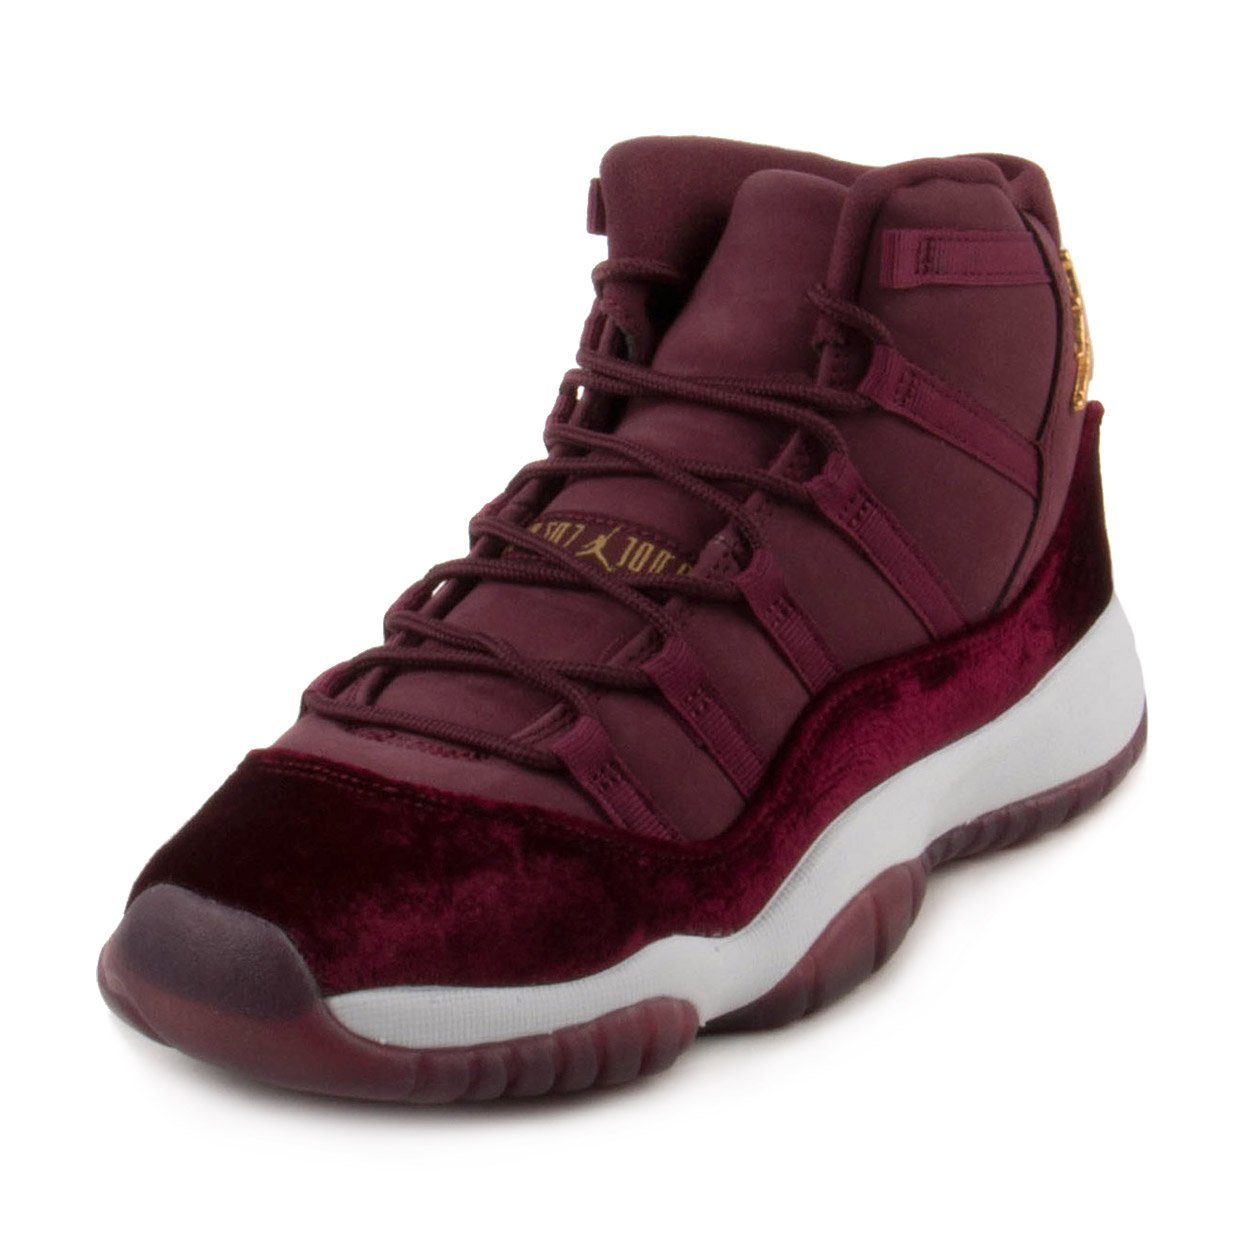 Nike Womens Air Jordan 11 Retro RL GG ''Heiress'' Night Marron/Metallic Gold Suede Size 7Y by NIKE